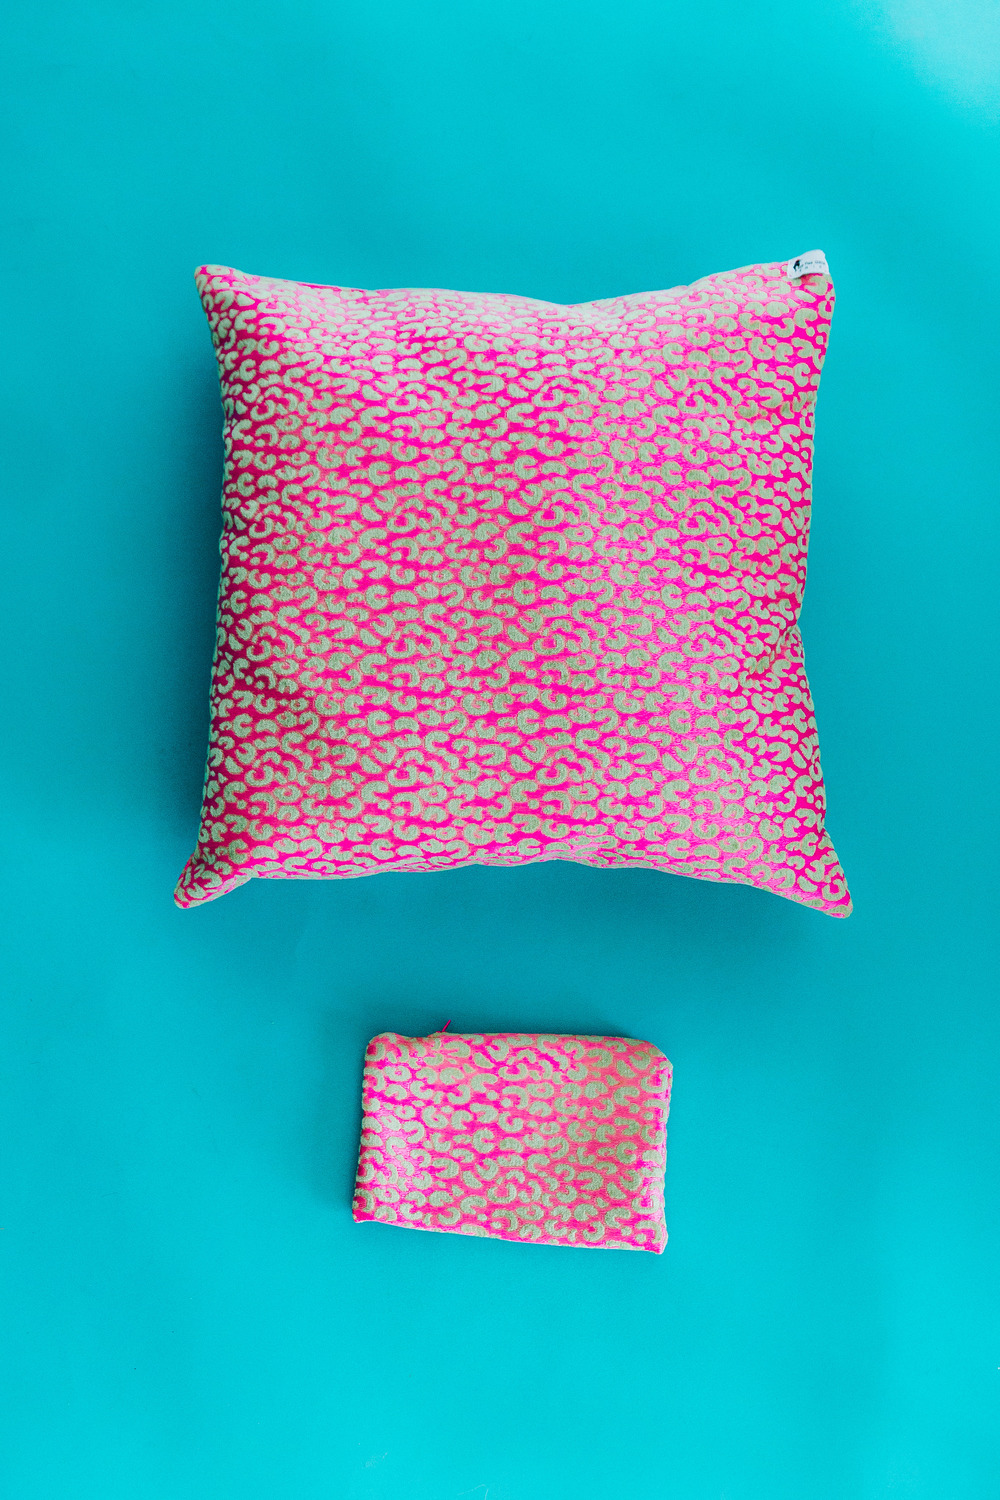 Tatalicious Pillow x Pouch.